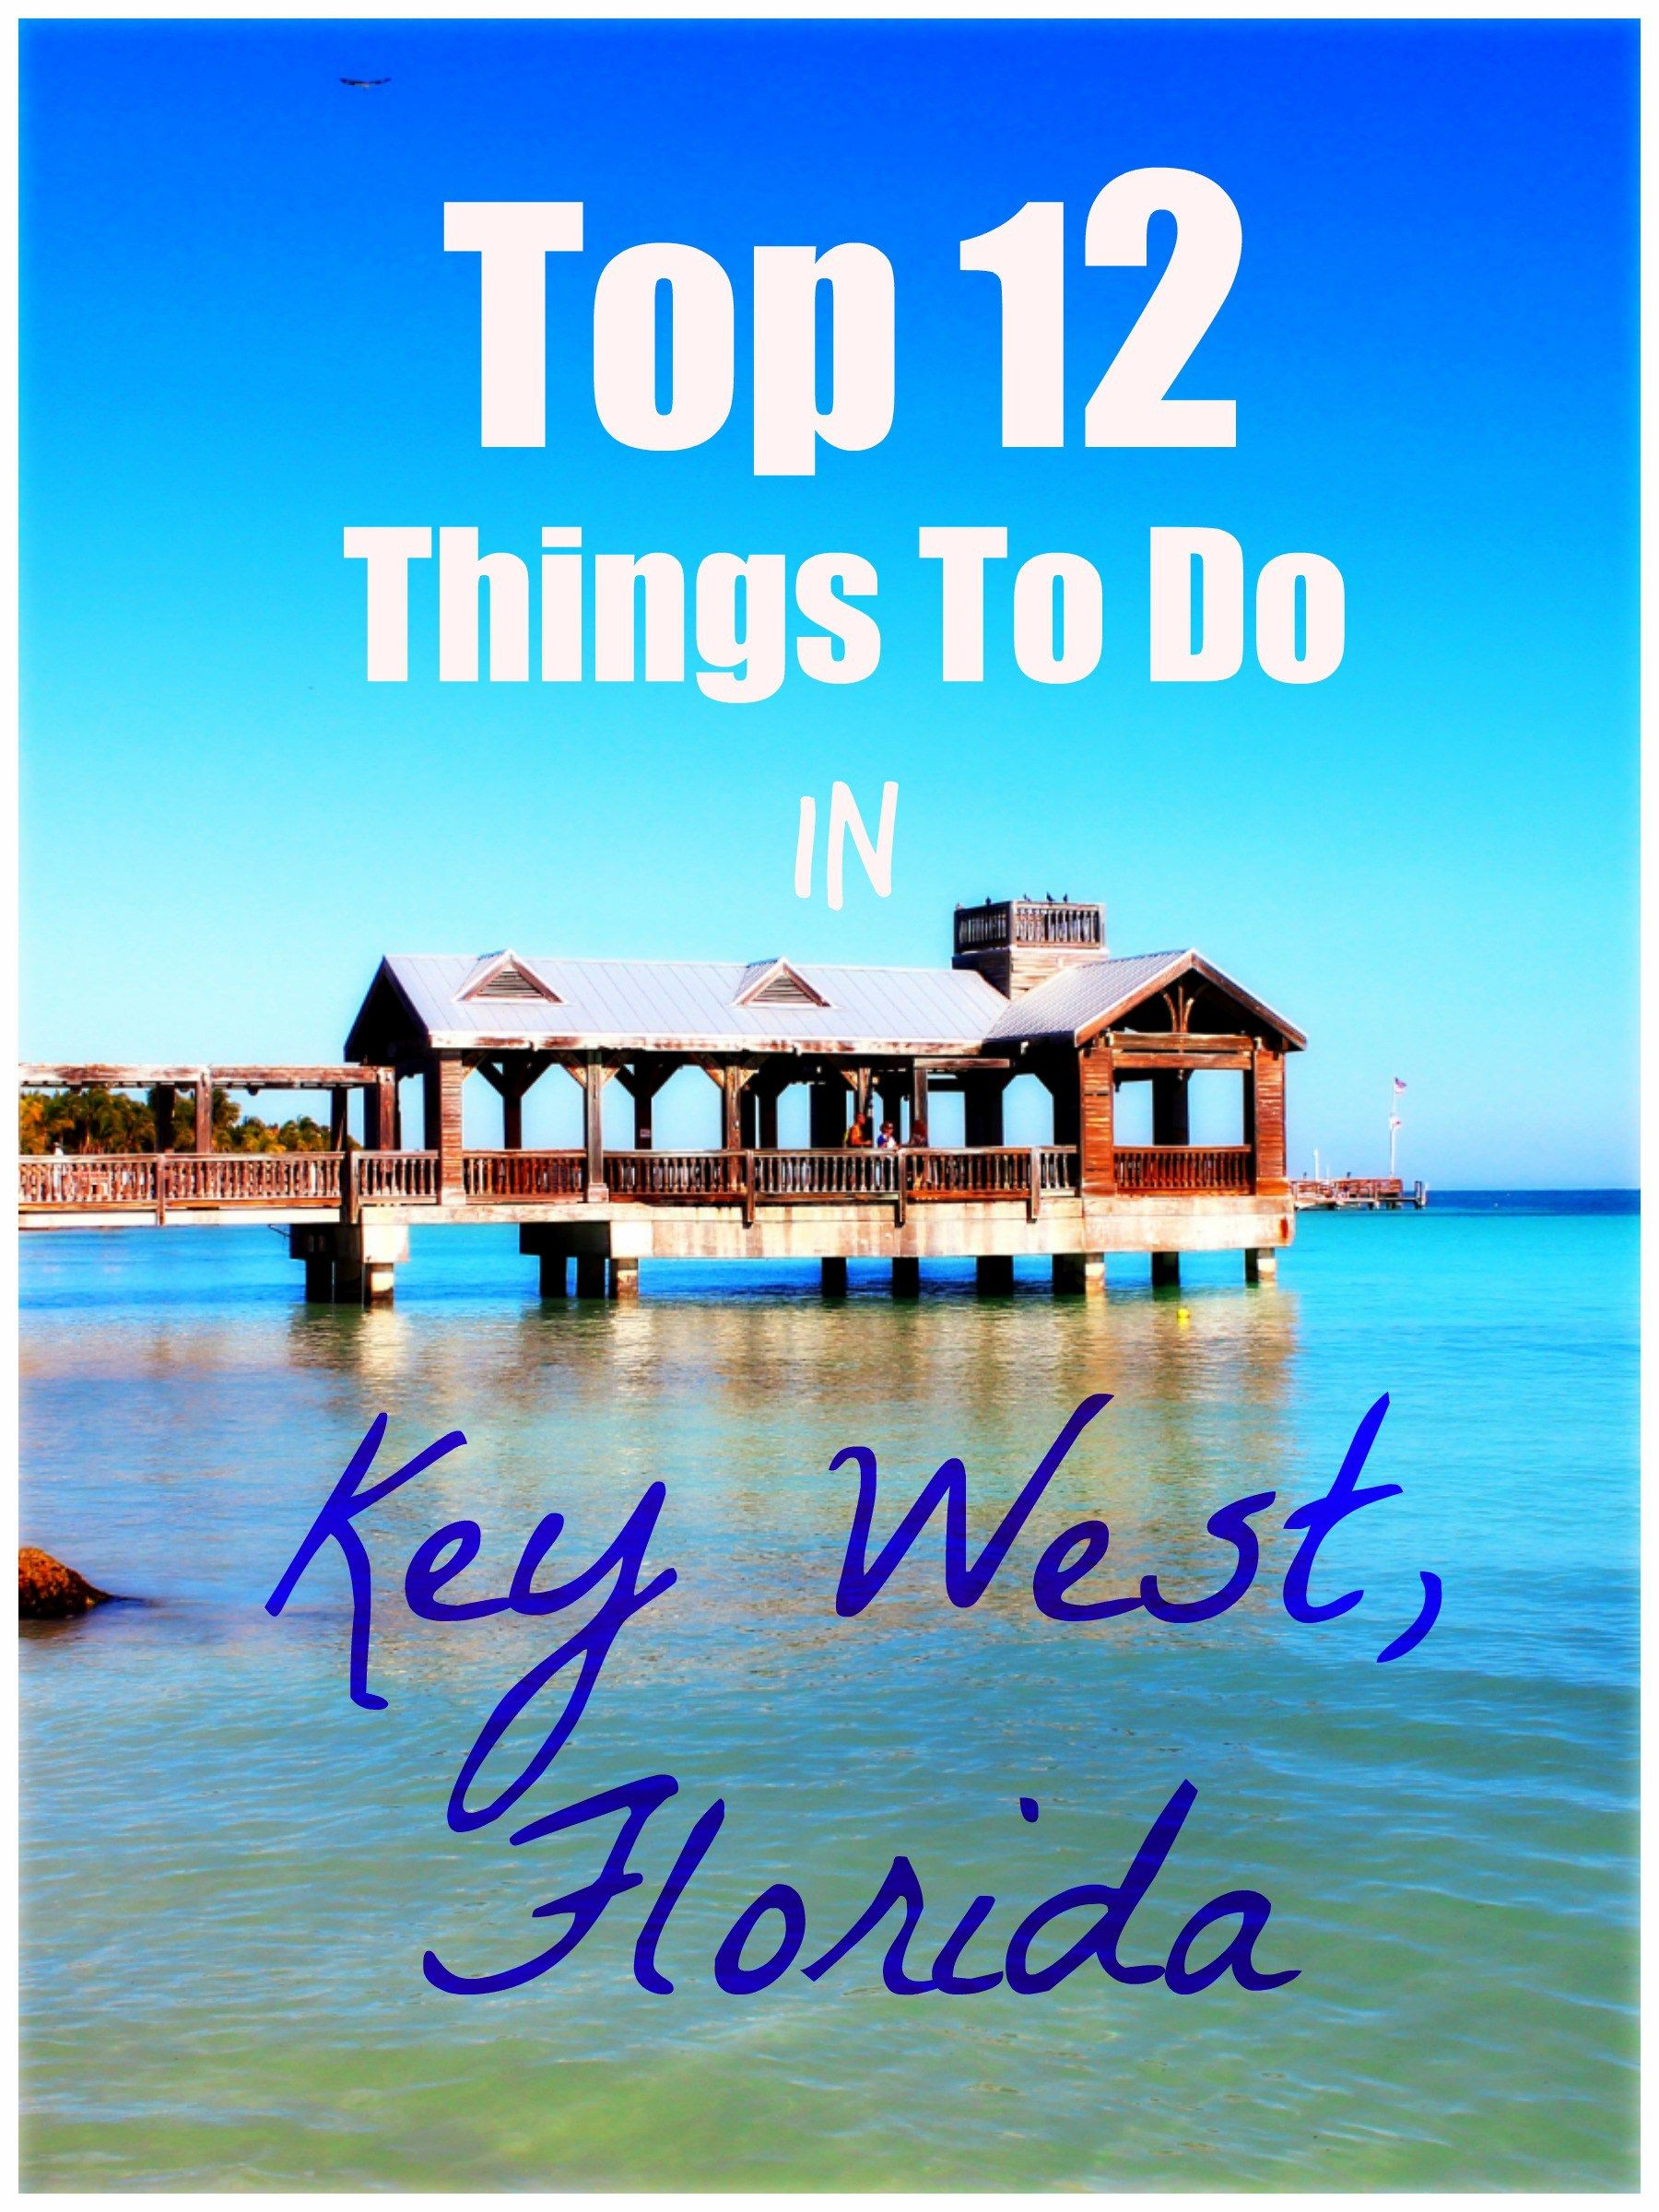 Top 12 Things To Do In Key West, Florida | Key west ...